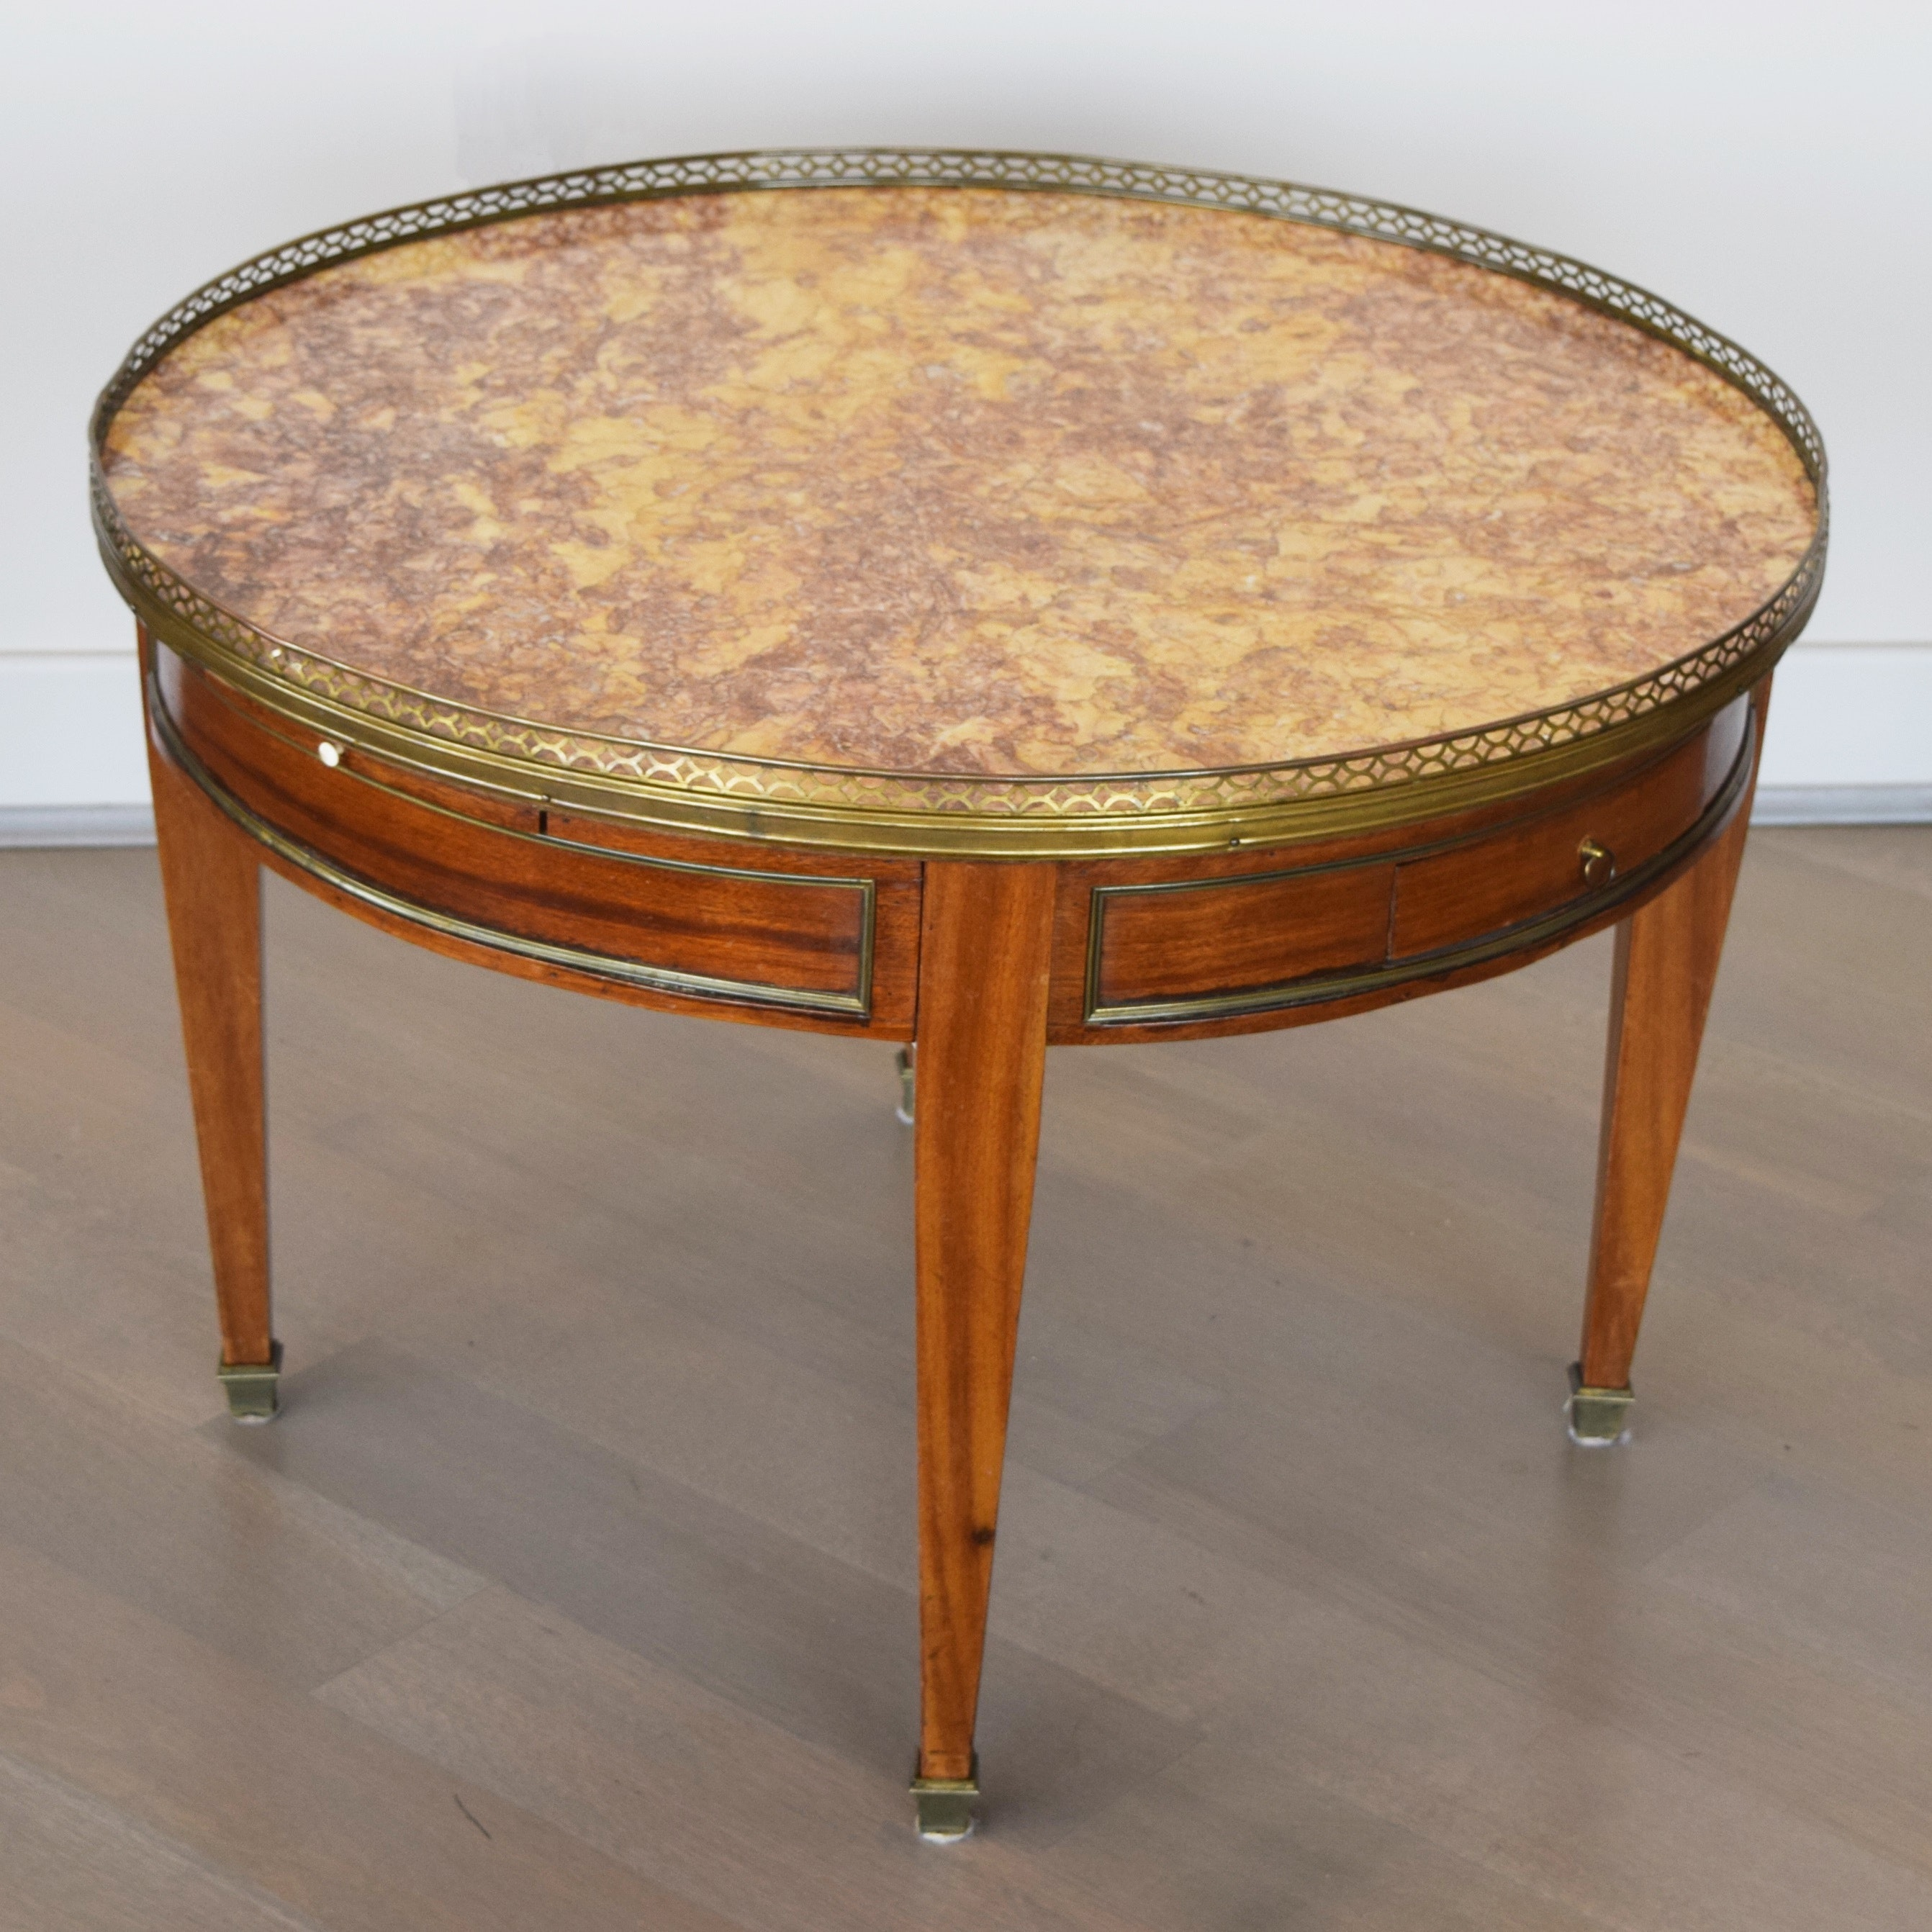 19th century round marble top coffee table with brass gallery